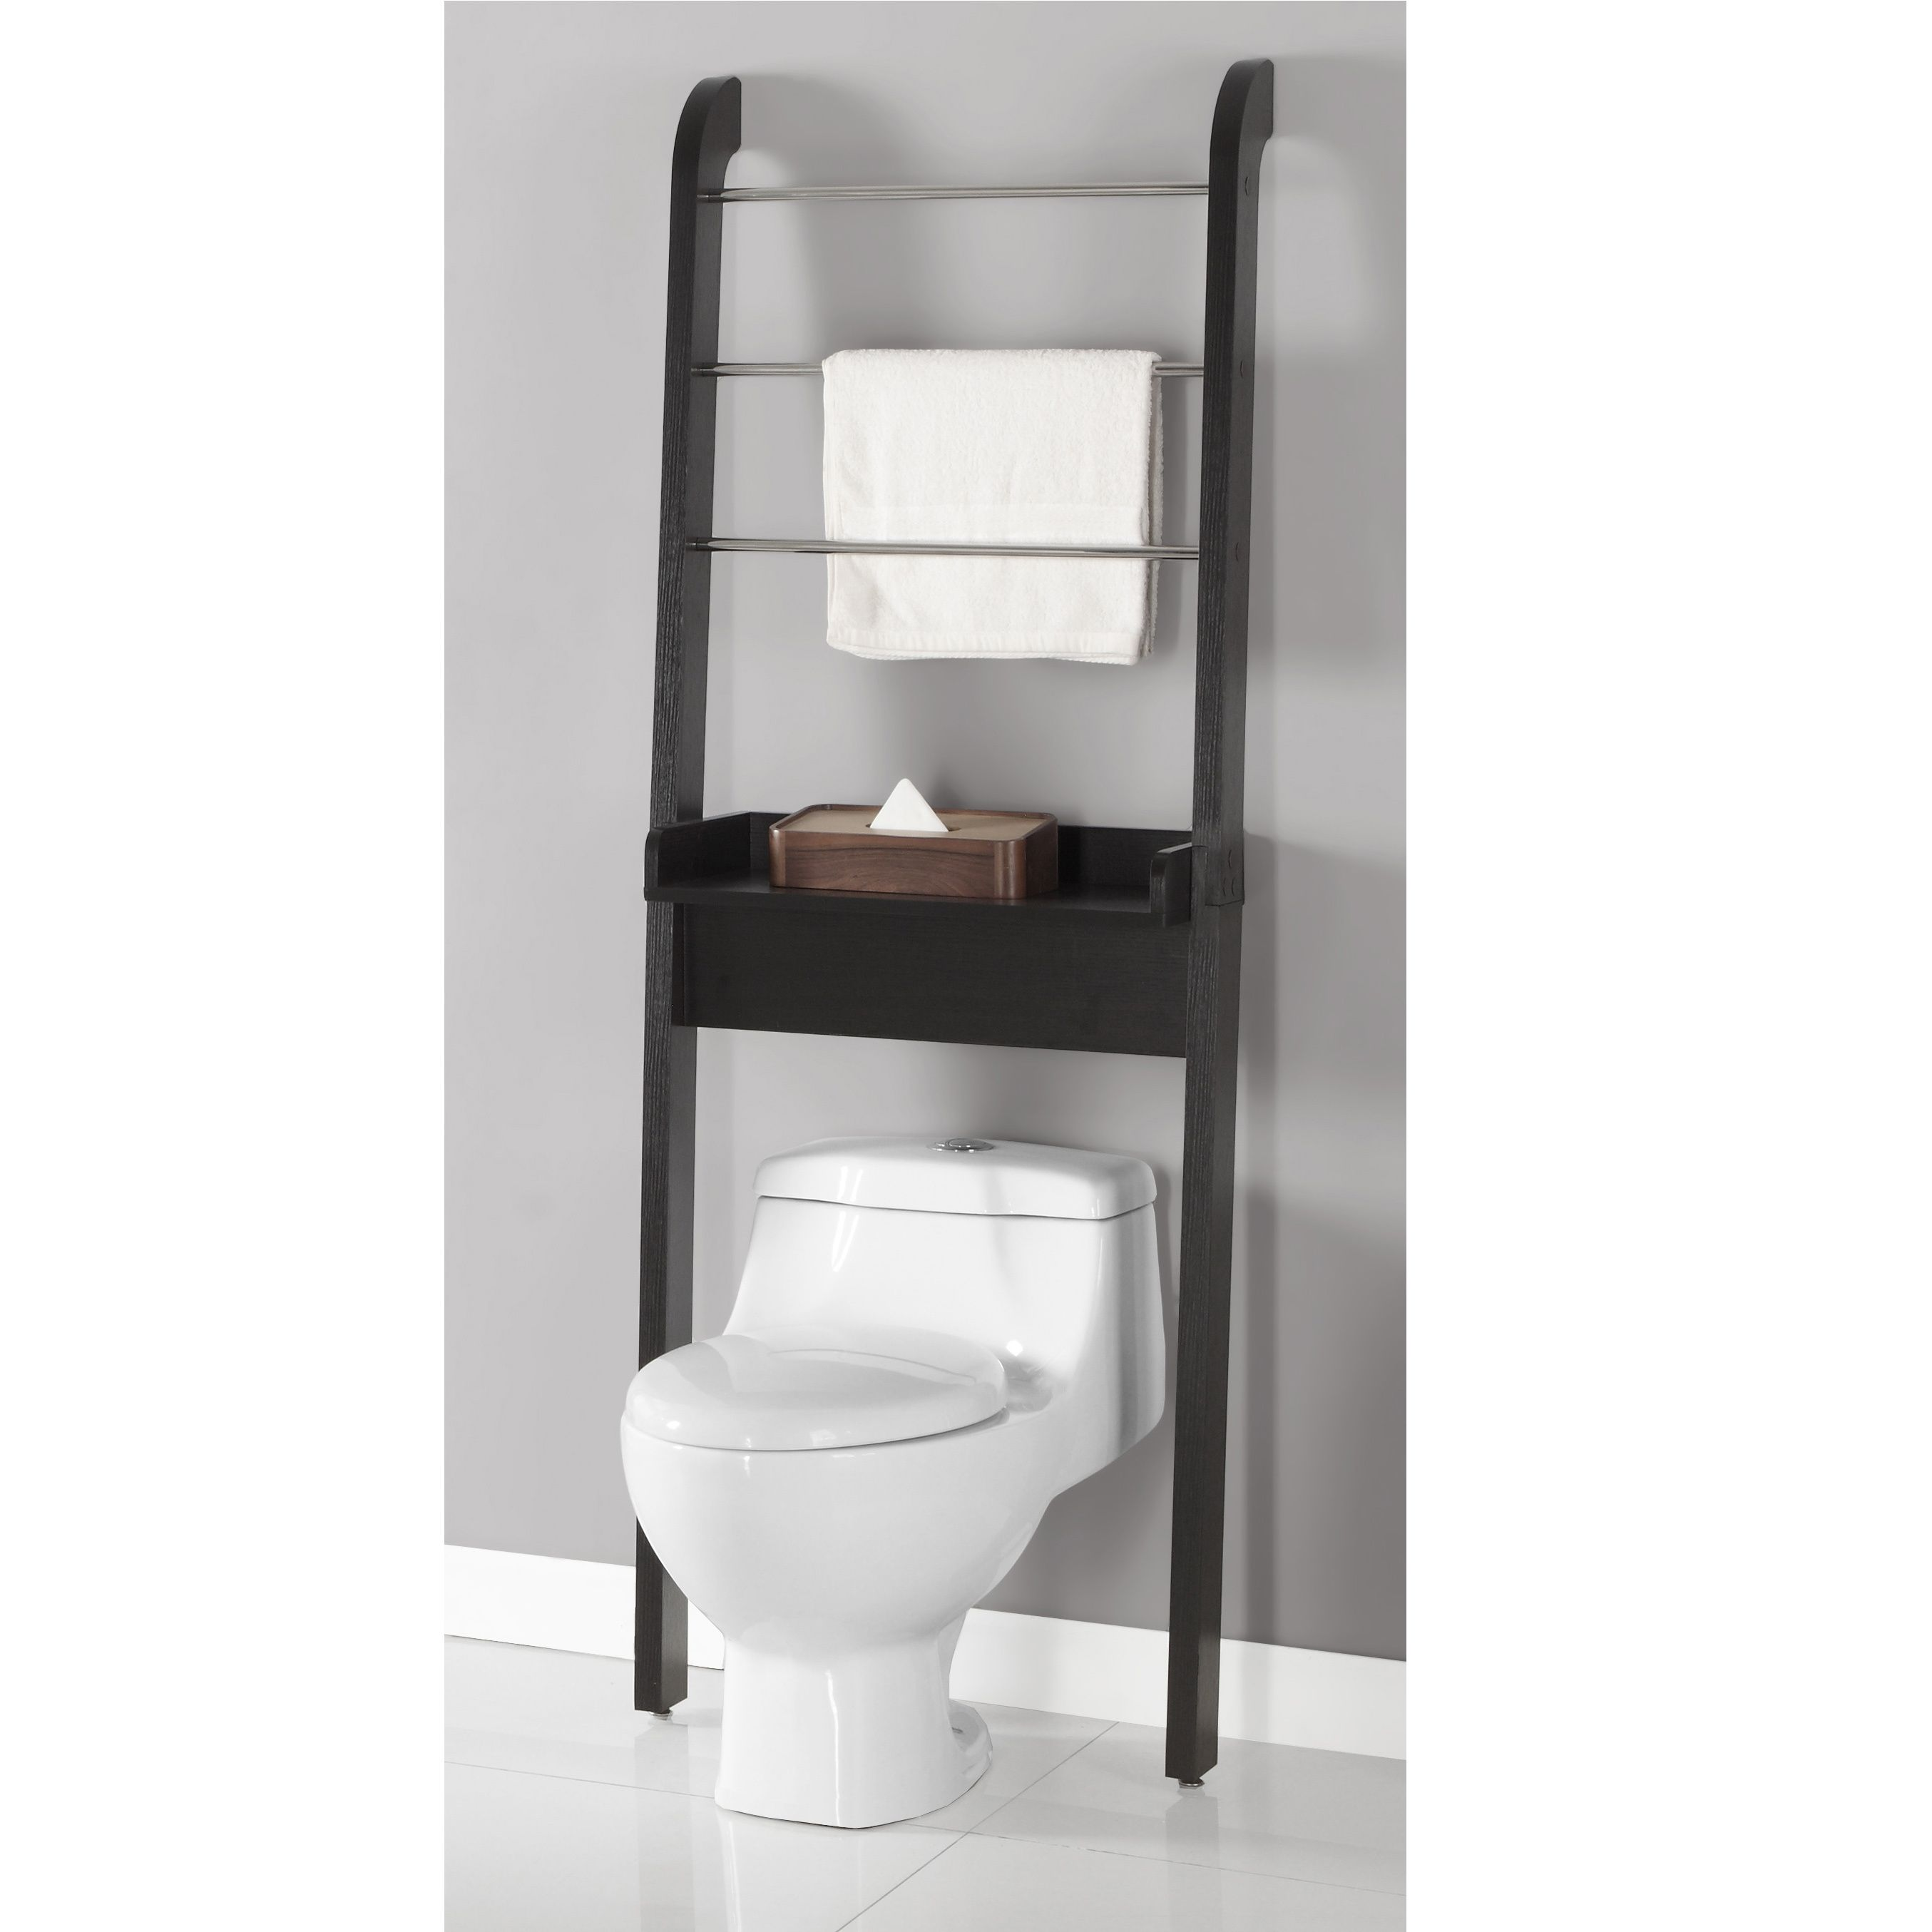 Top 7 Best Over The Toilet Storage Units Reviews Best Garbage Disposal Units Bathroom Cabinets Over Toilet Bathroom Cabinets Designs Bathroom Shelves